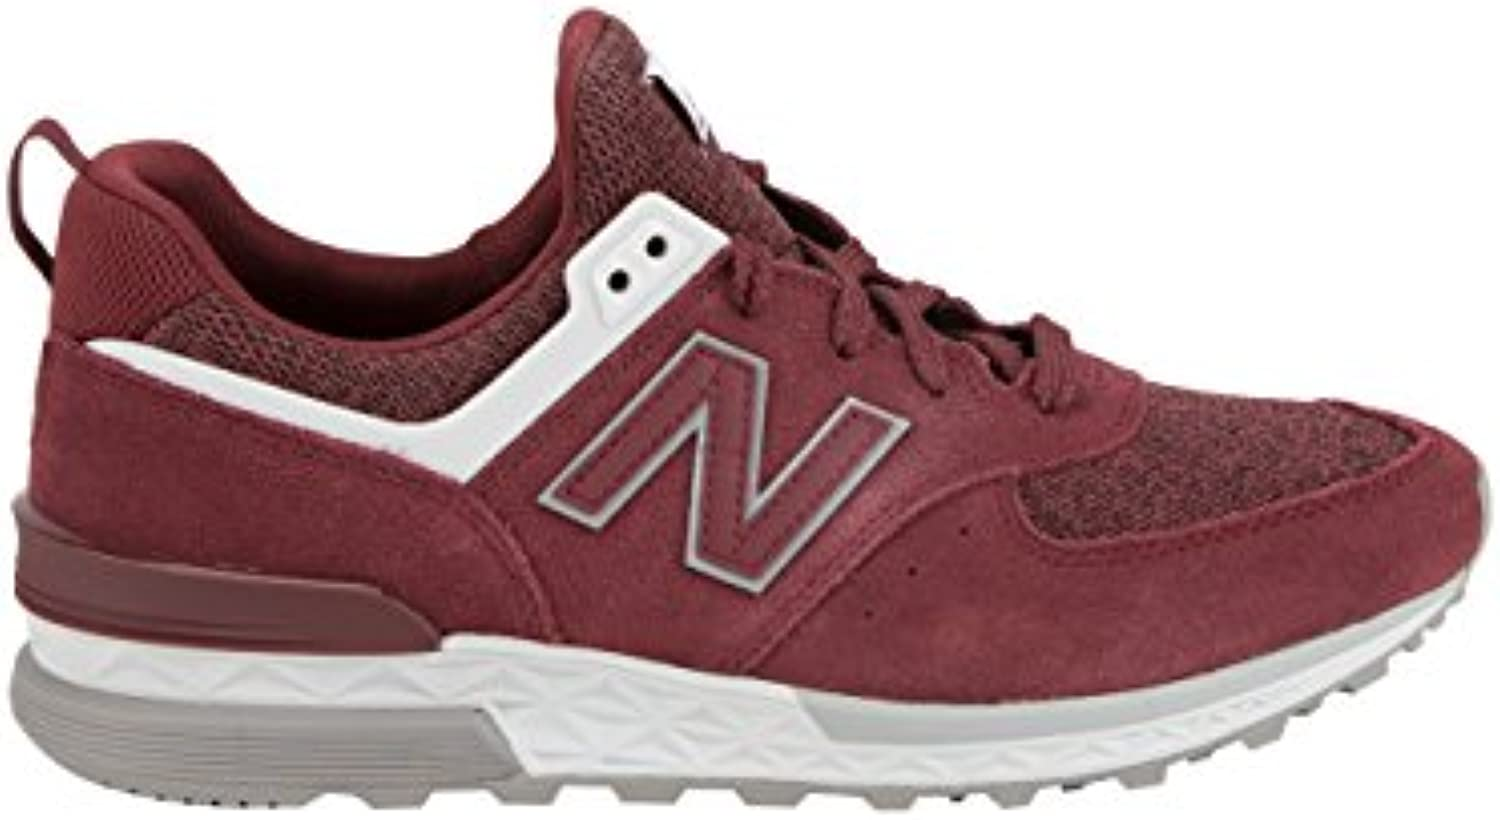 New Balance Red Suede MS574 CC Trainers